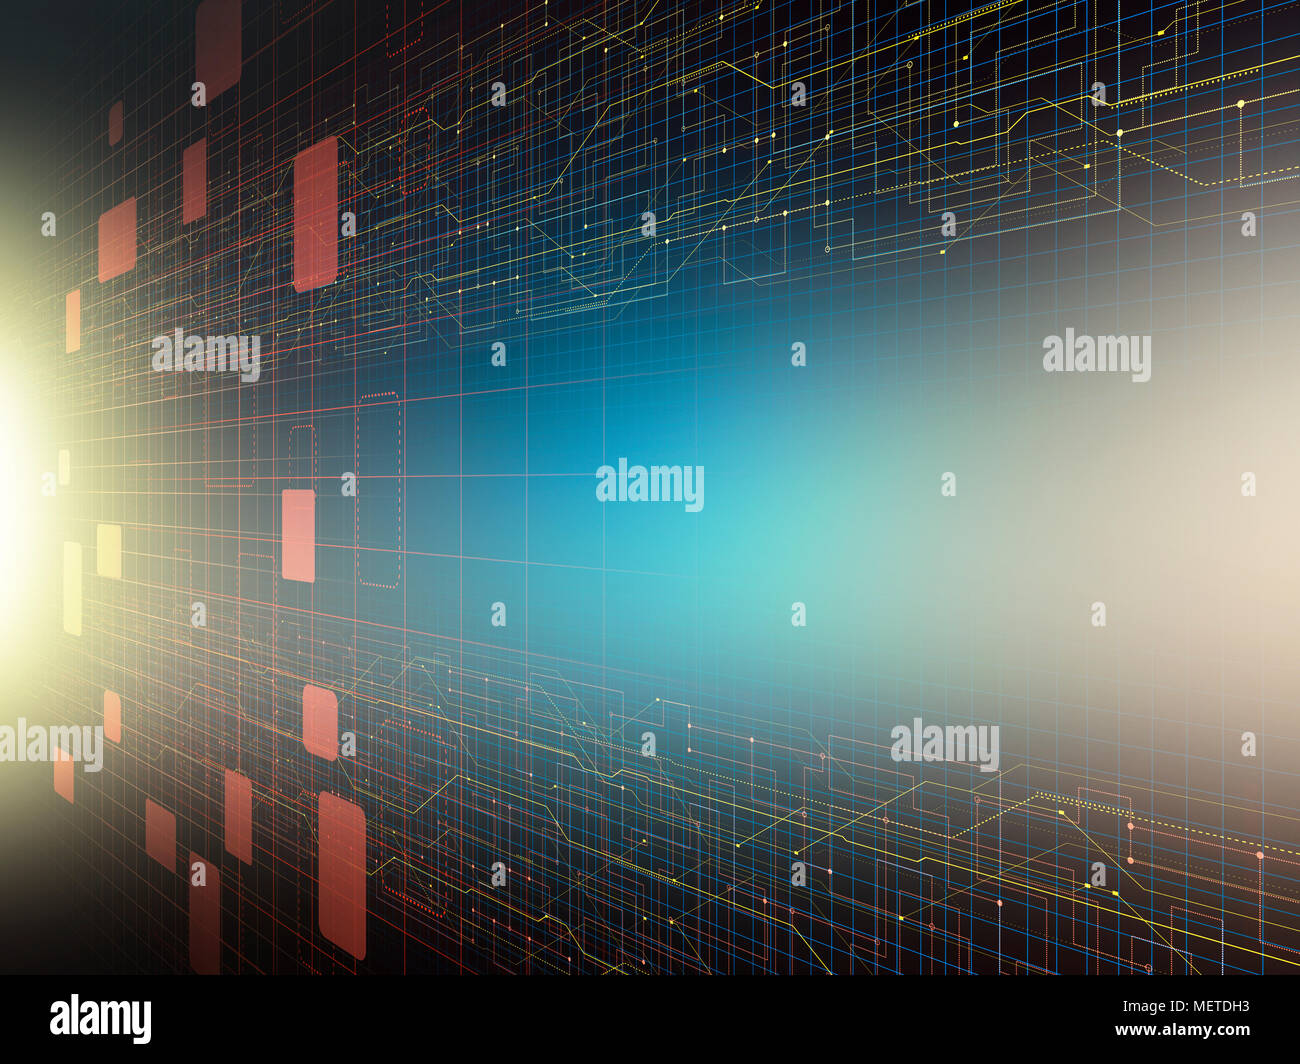 Circuit Diagram Without Centre Stock Photo: 181246383 - Alamy